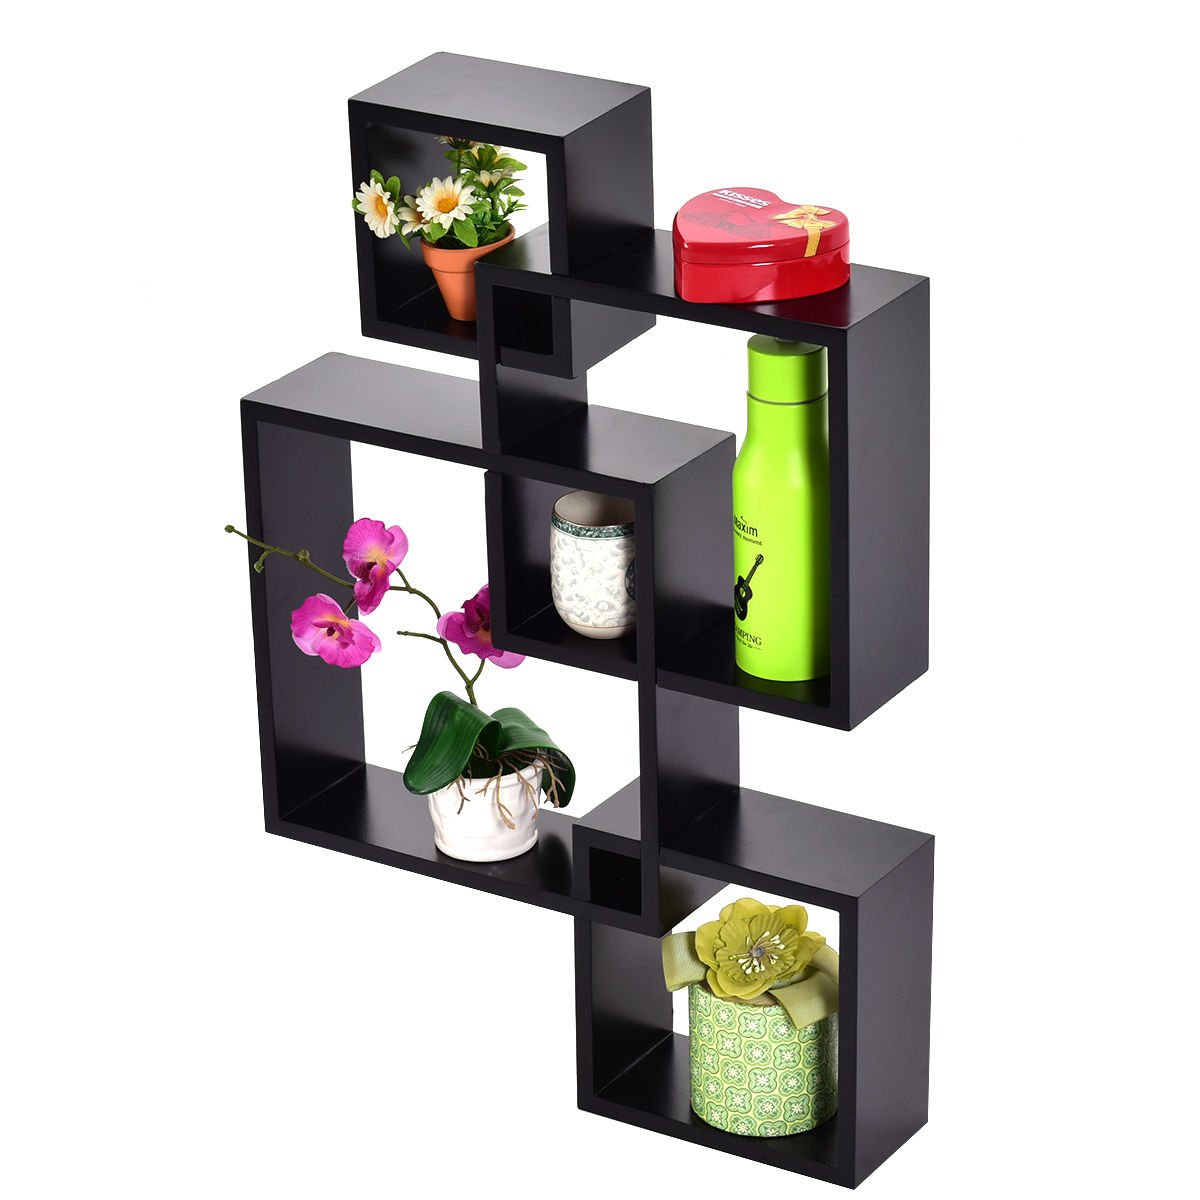 4 Square Floating Shelf Wall black Intersecting Mounted Home Furniture Decor New Modern Decoration